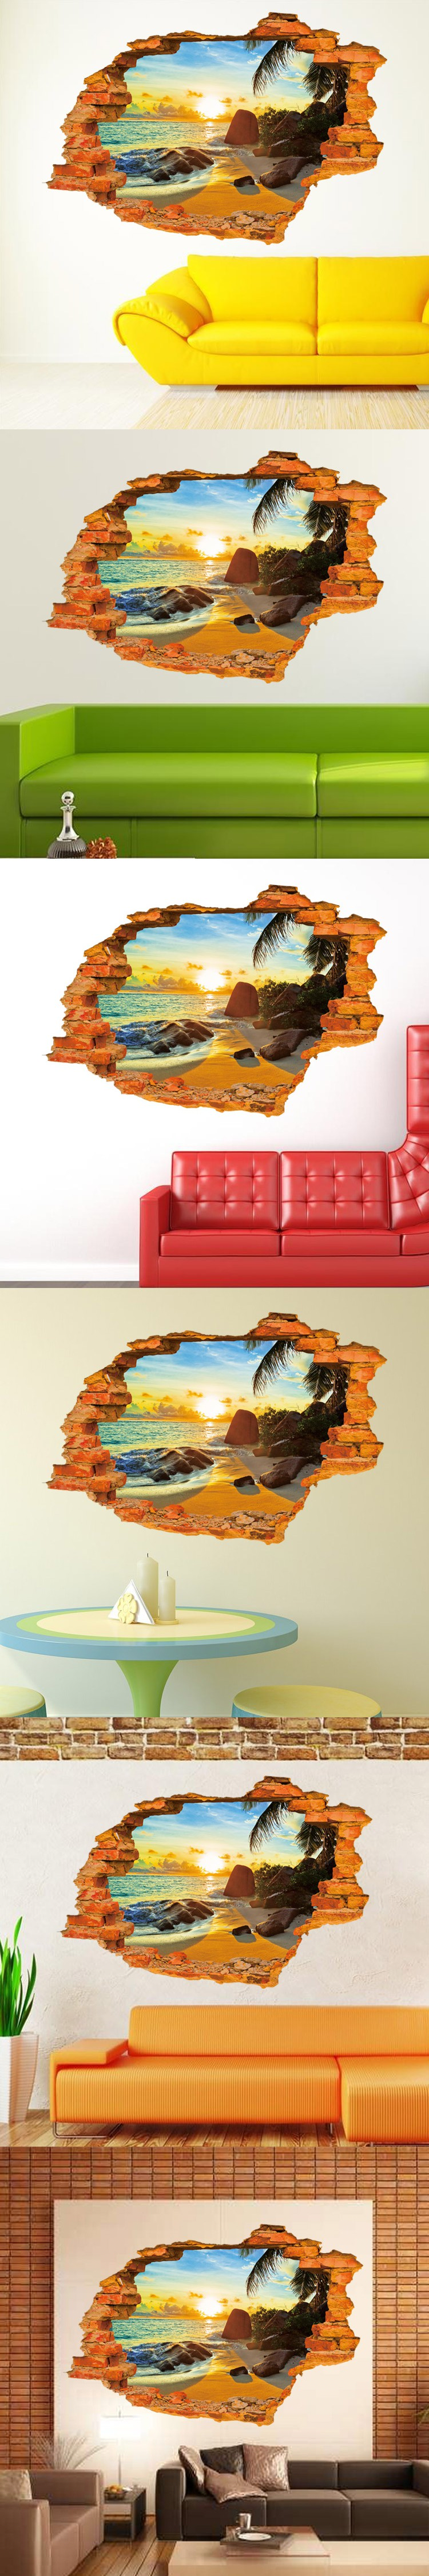 3D Sun and Seaside Beach Sea Wall Sticker for TV background livingroom Bedroom kids Home Decor paper poster aw8001C $7.8